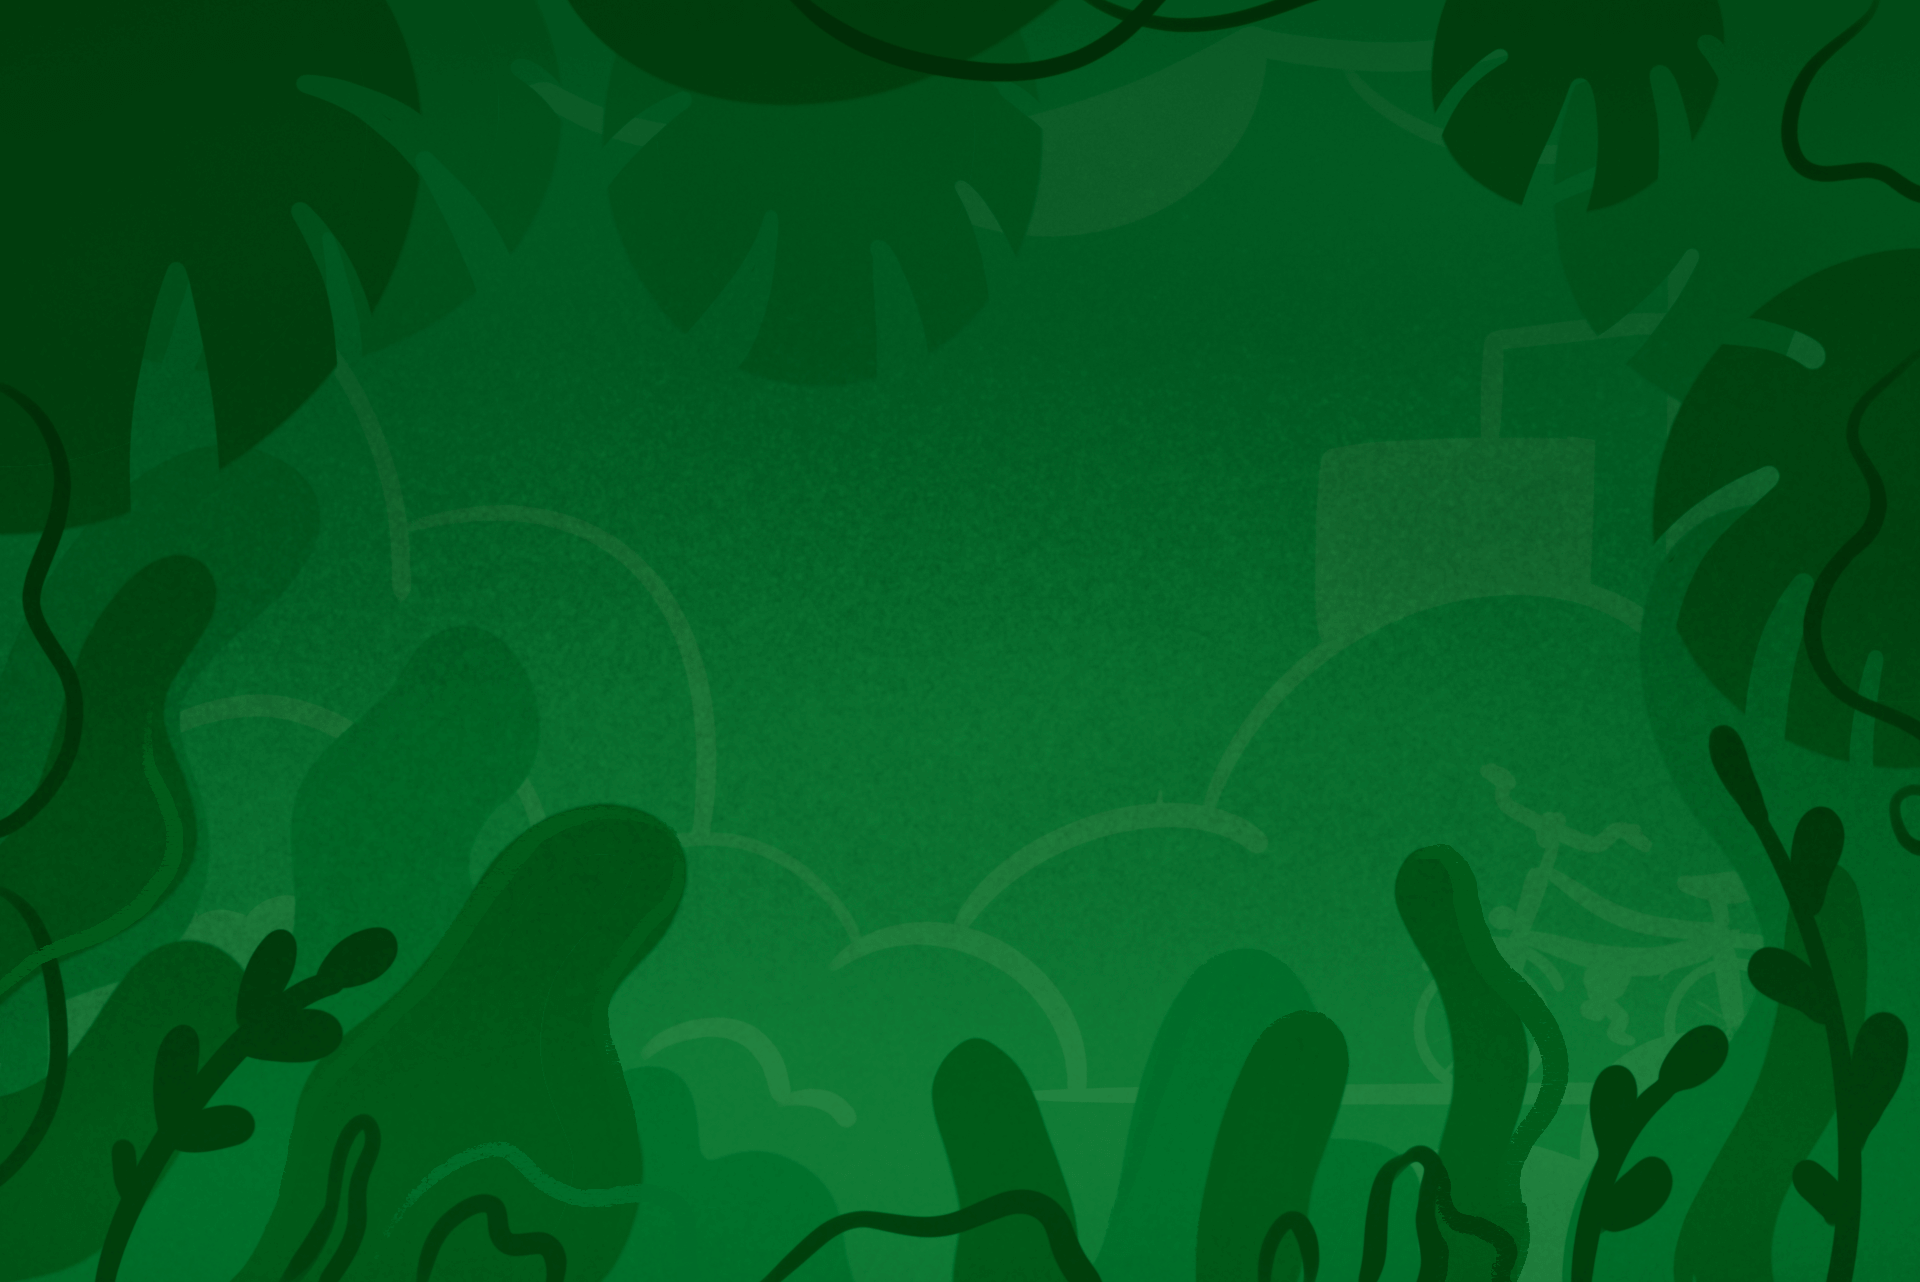 green background with plants